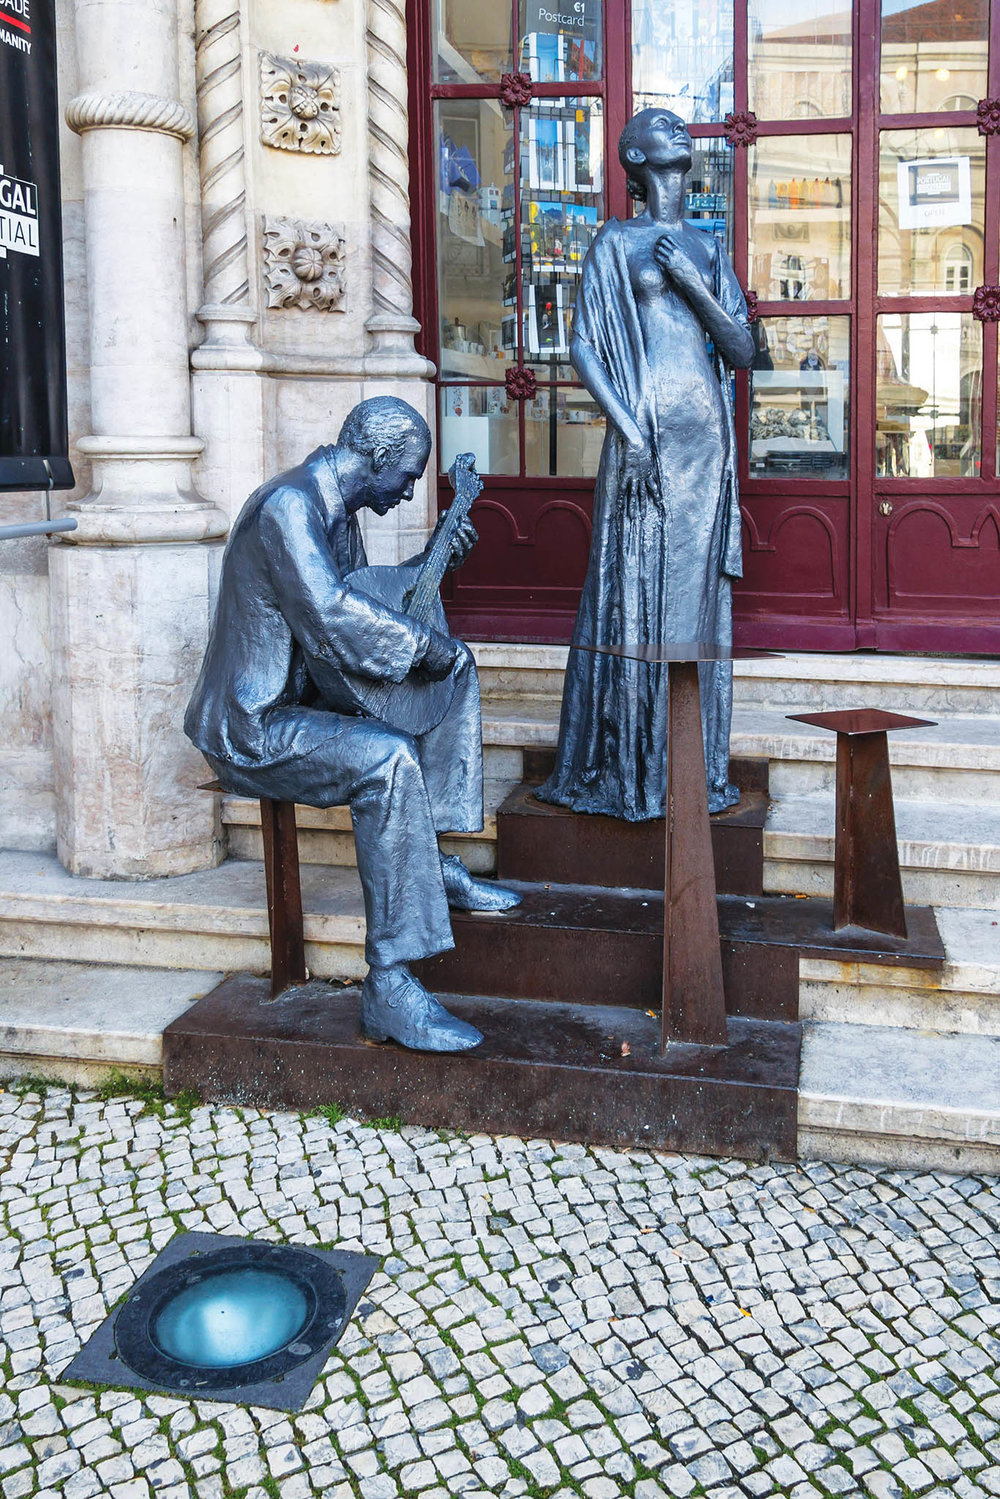 A fado monument near the Rossio station in Lisbon speaks to the enduring love of the art form.Damira / shutterstock.com